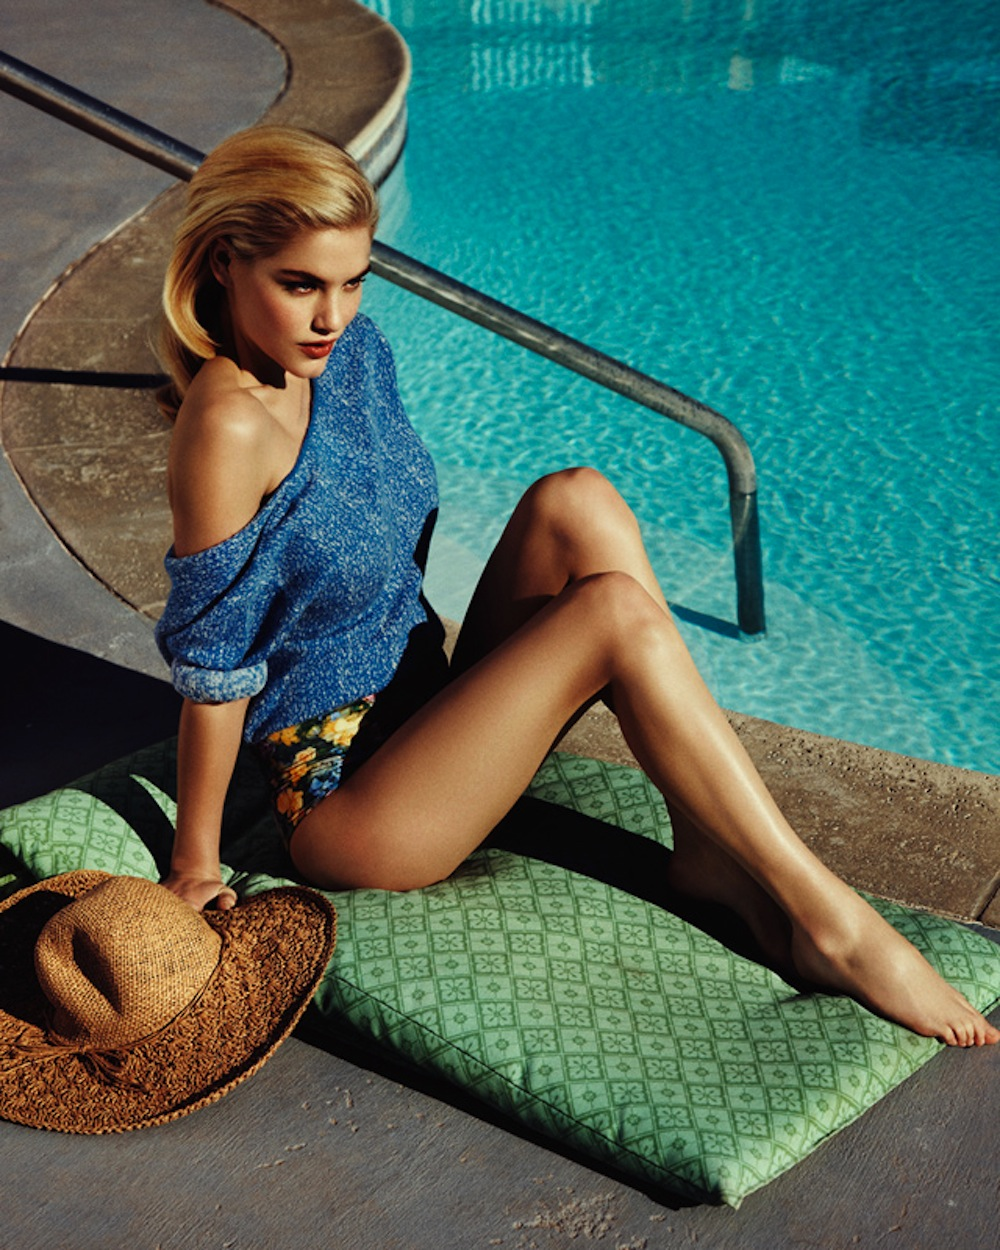 ashley smith by dan martensen